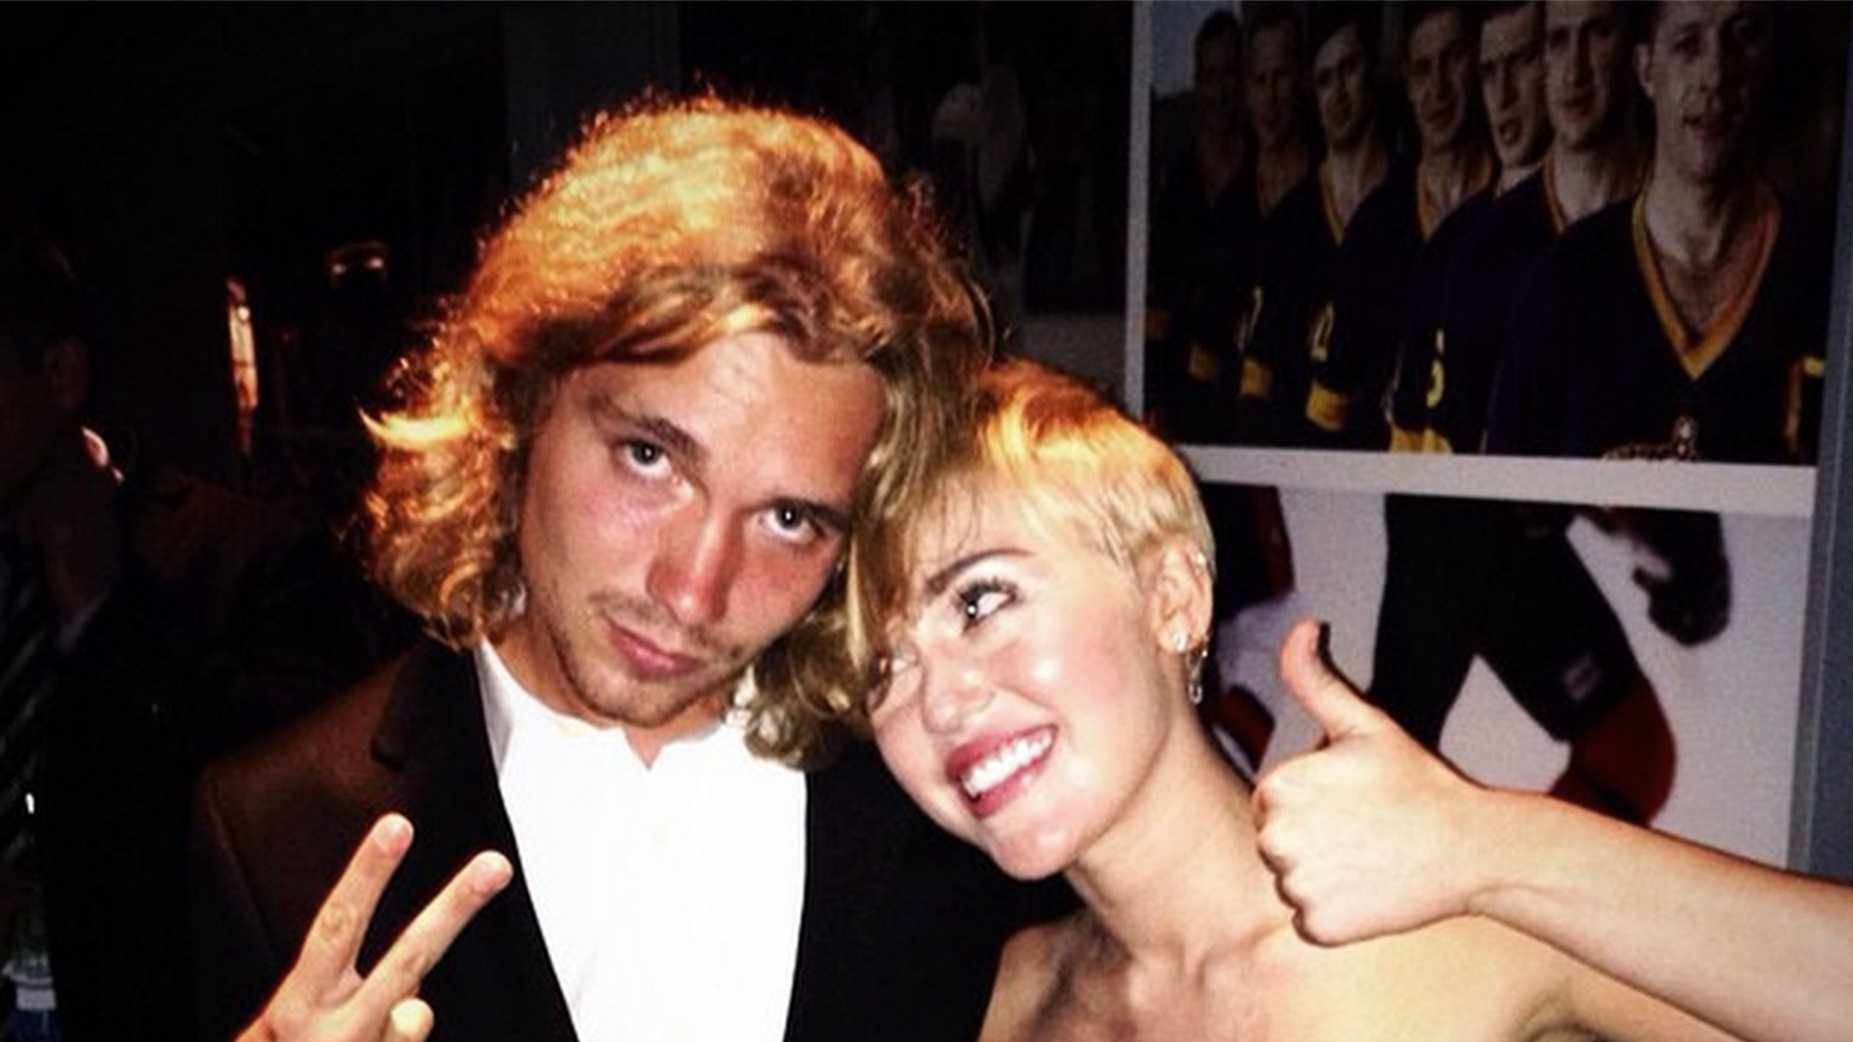 Miley Cyrus and her MTV Video Music Awards date, Jesse Helt.